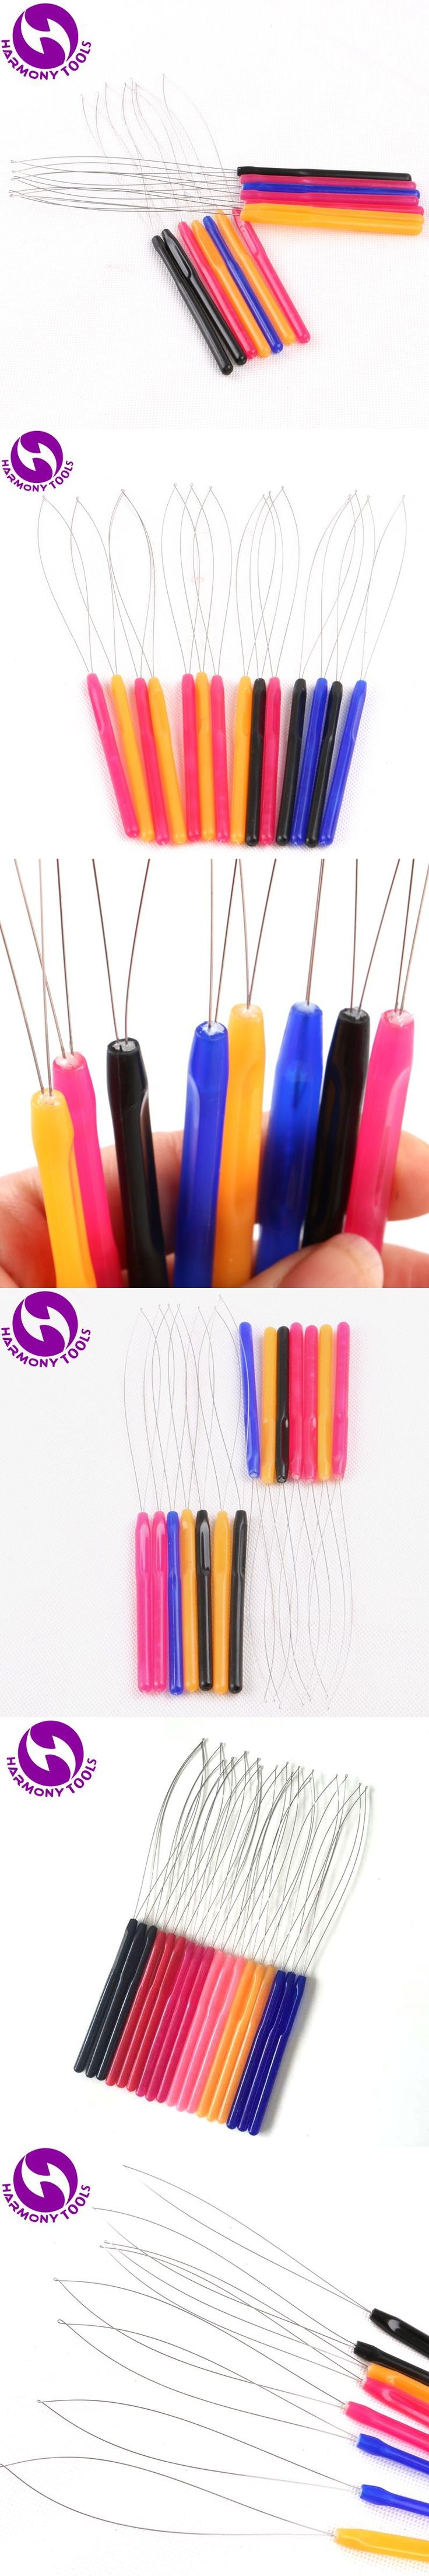 HARMONY 10 pieces mix colors plastic handle loop threader tools used with plier and micro beads for micro rings hair extensions